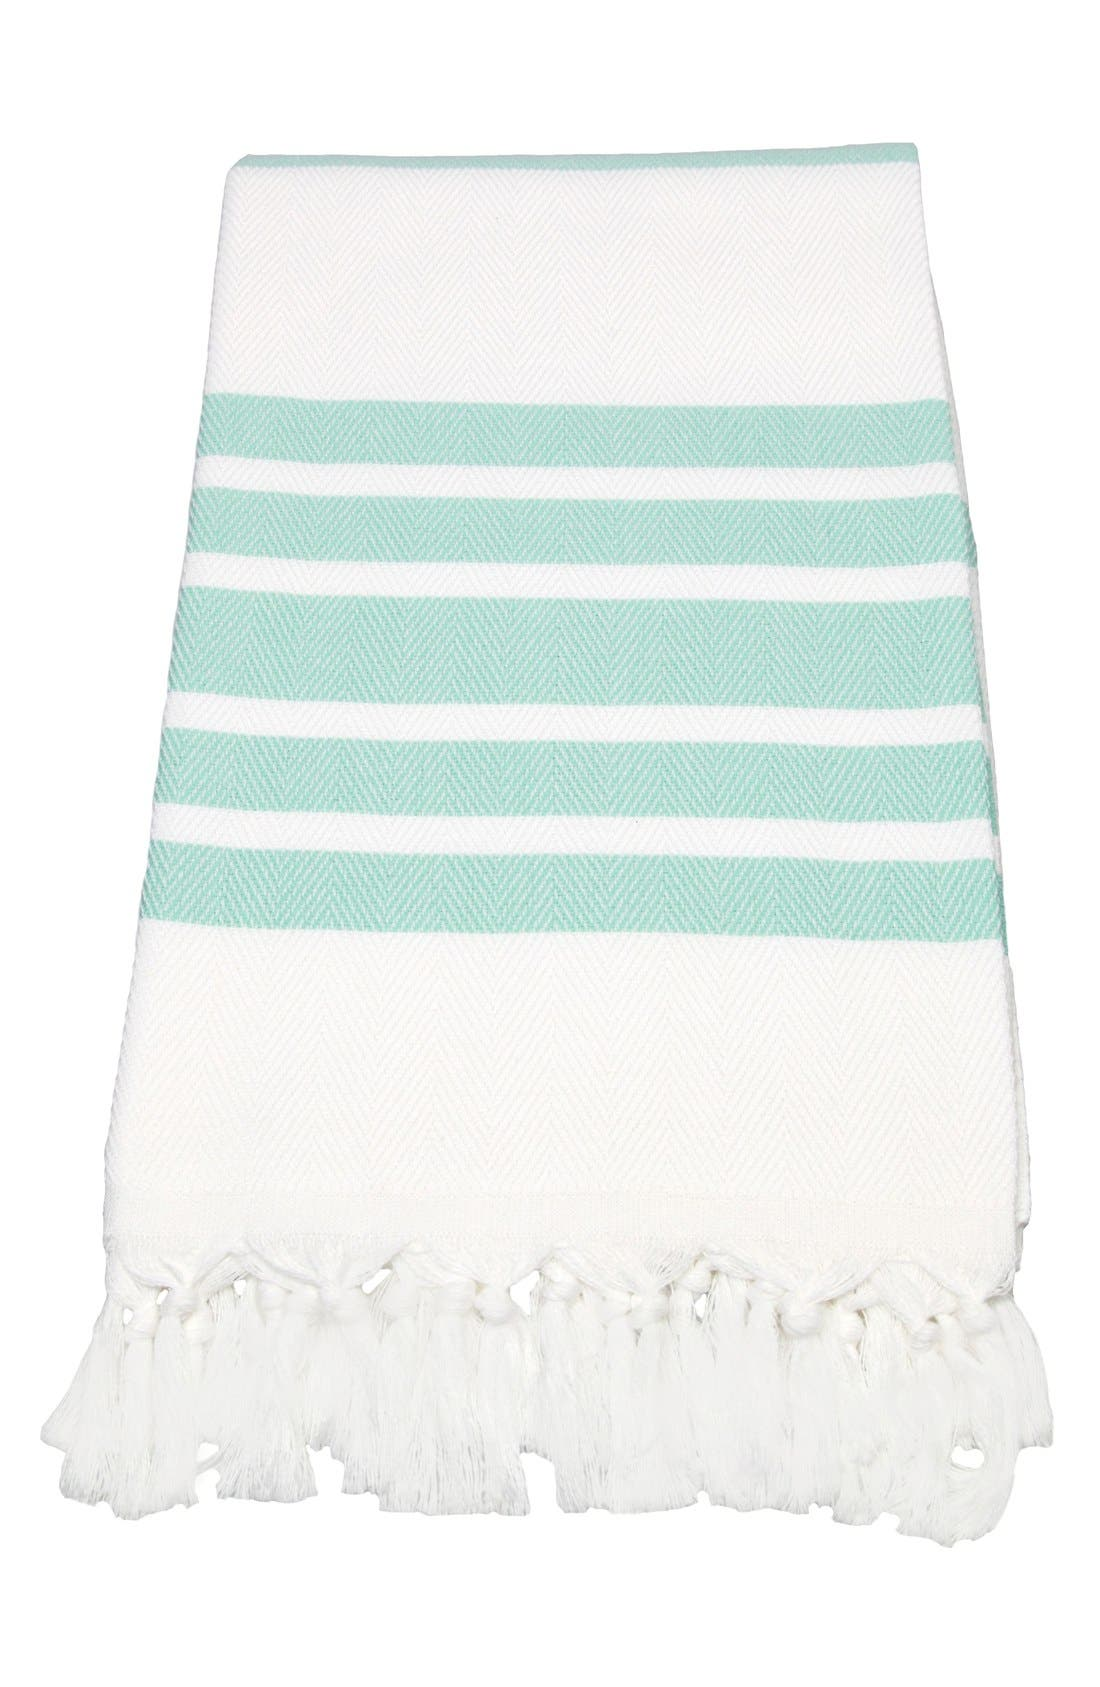 Main Image - Linum Home Textiles Herringbone Striped Turkish Pestemal Towel